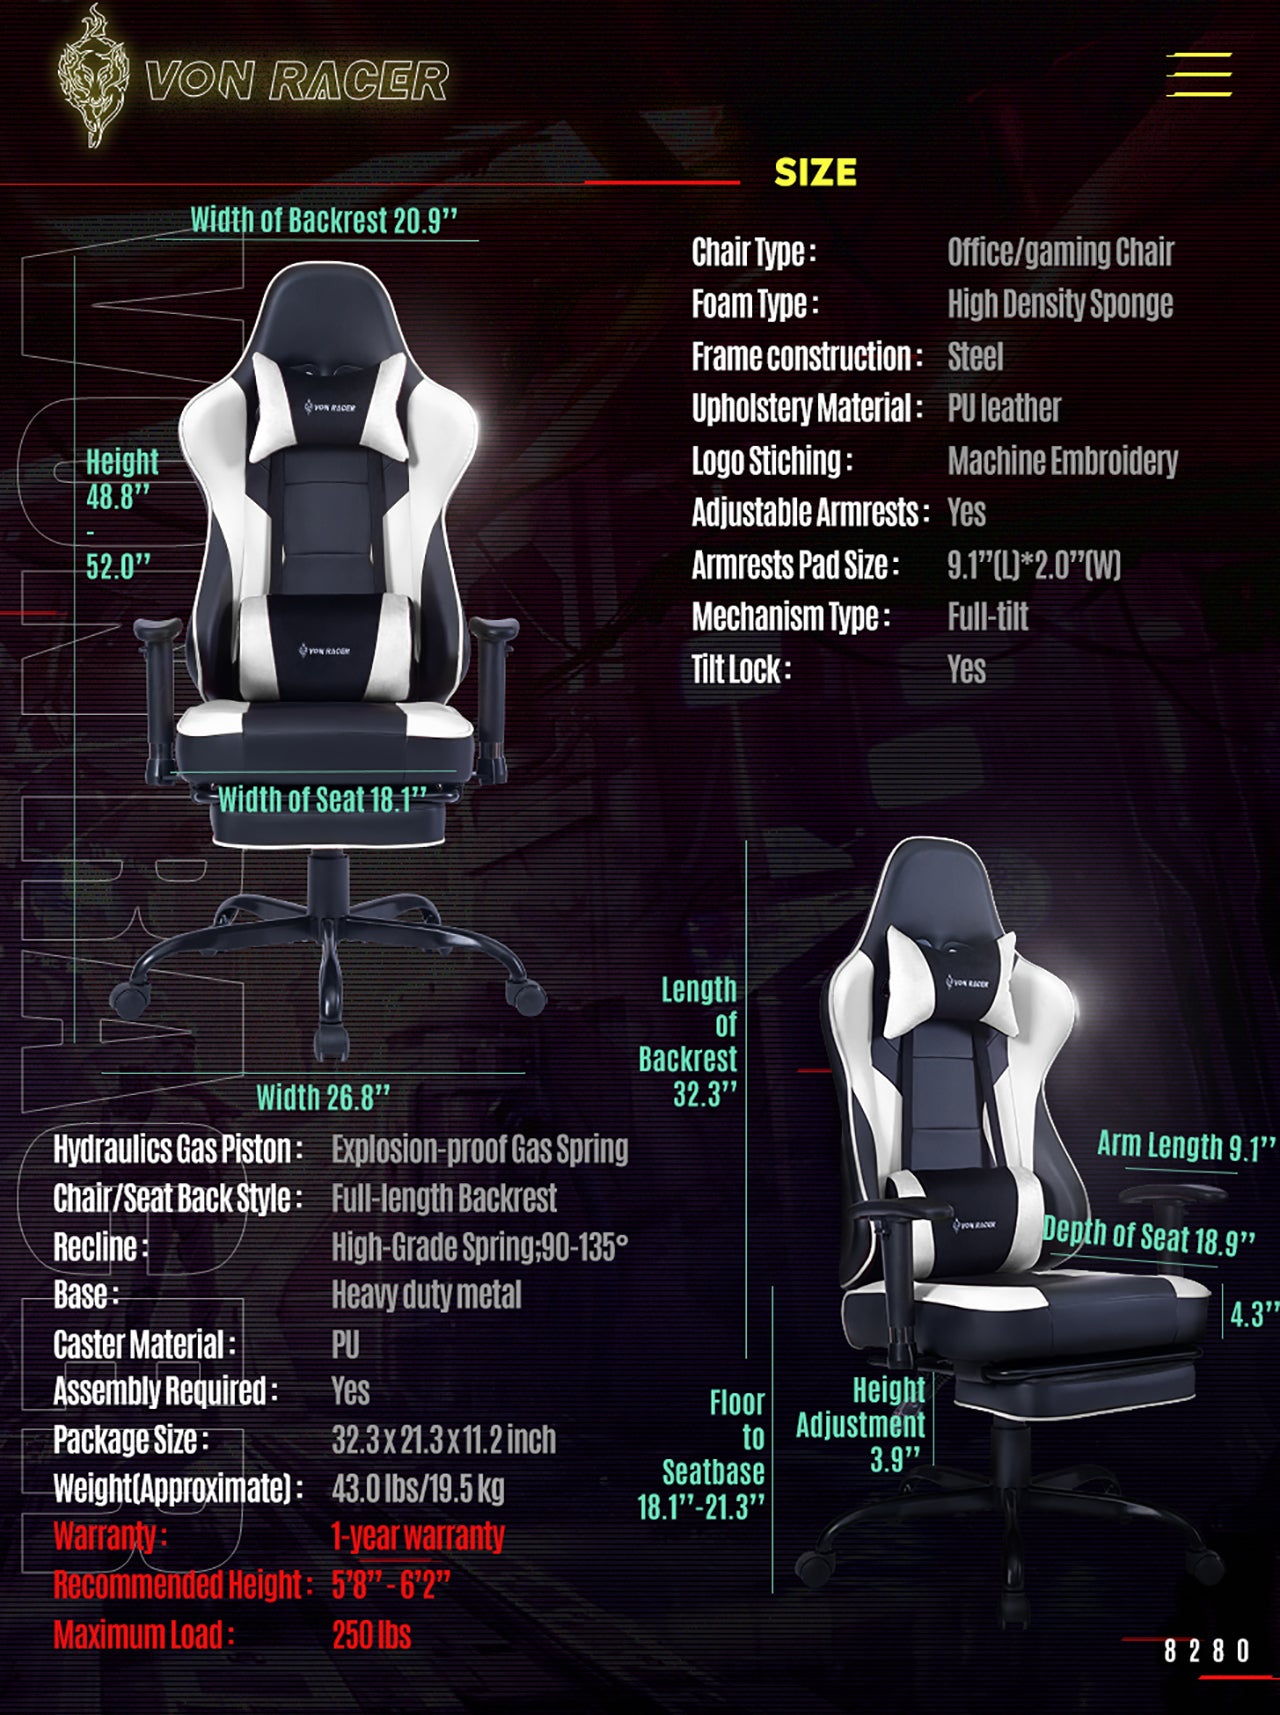 VON RACER ERGONOMIC GAMING CHAIR 8280 WHITE SPECIFICATION